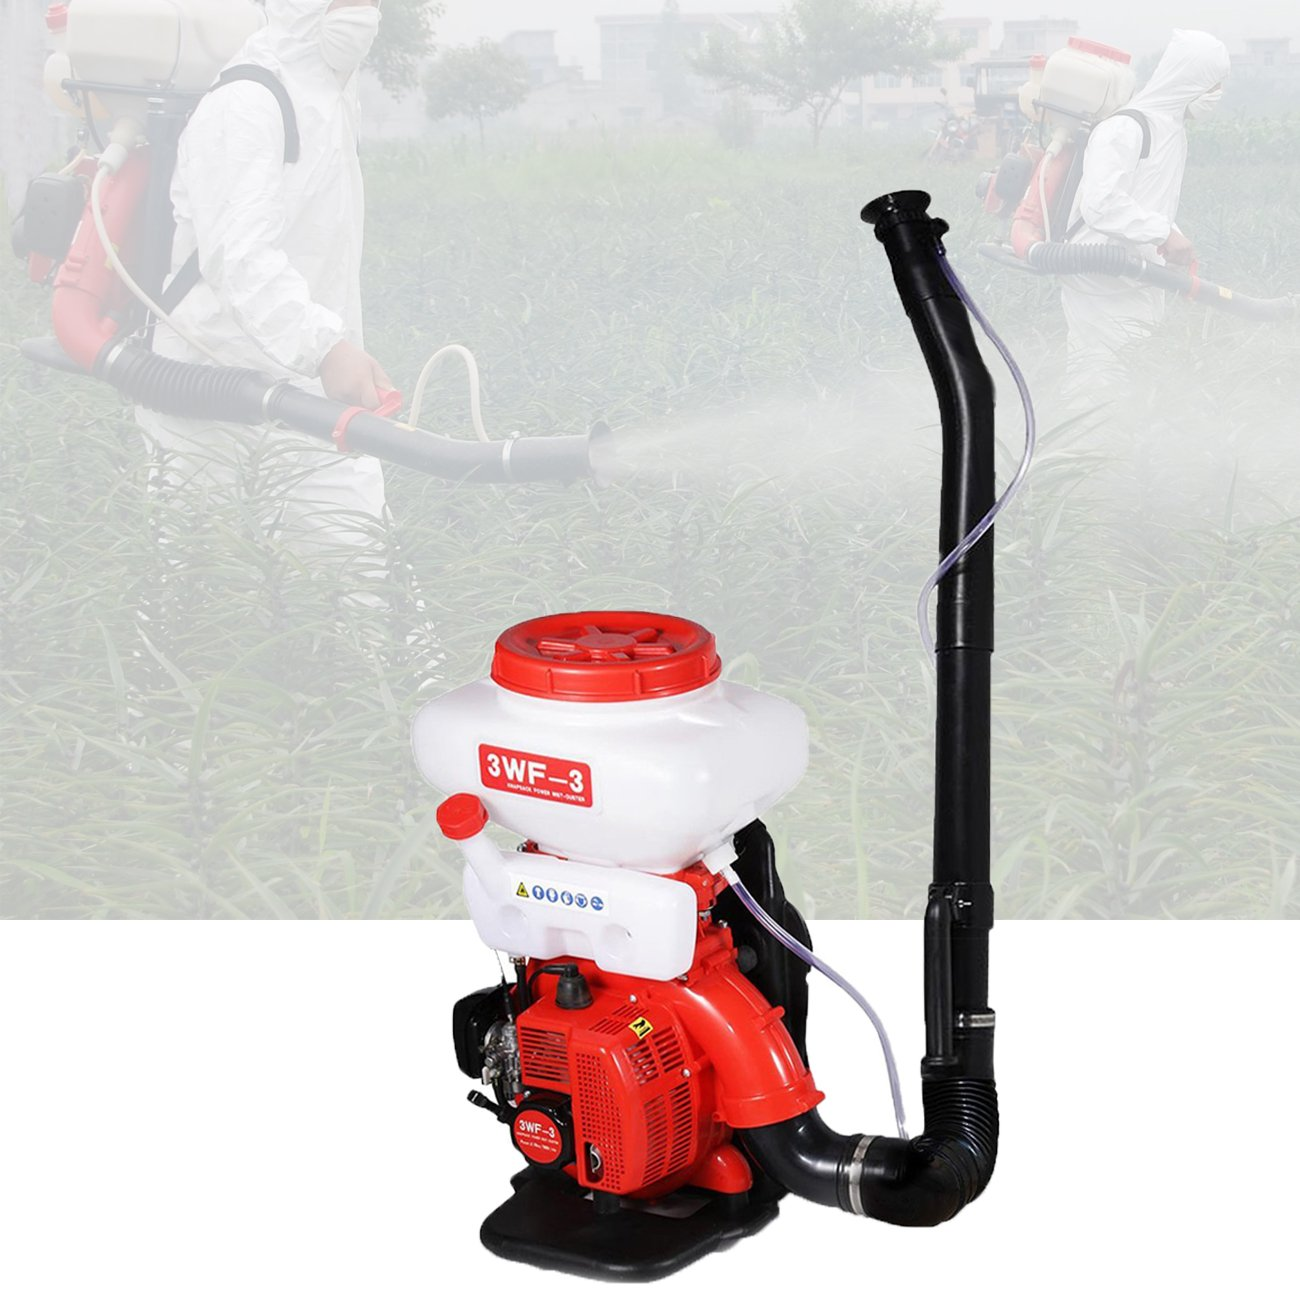 BEAMNOVA Mist Duster Blower Spray Gasoline Powered Mosquito Cold Fogger Backpack Sprayer for Agricultural Plants